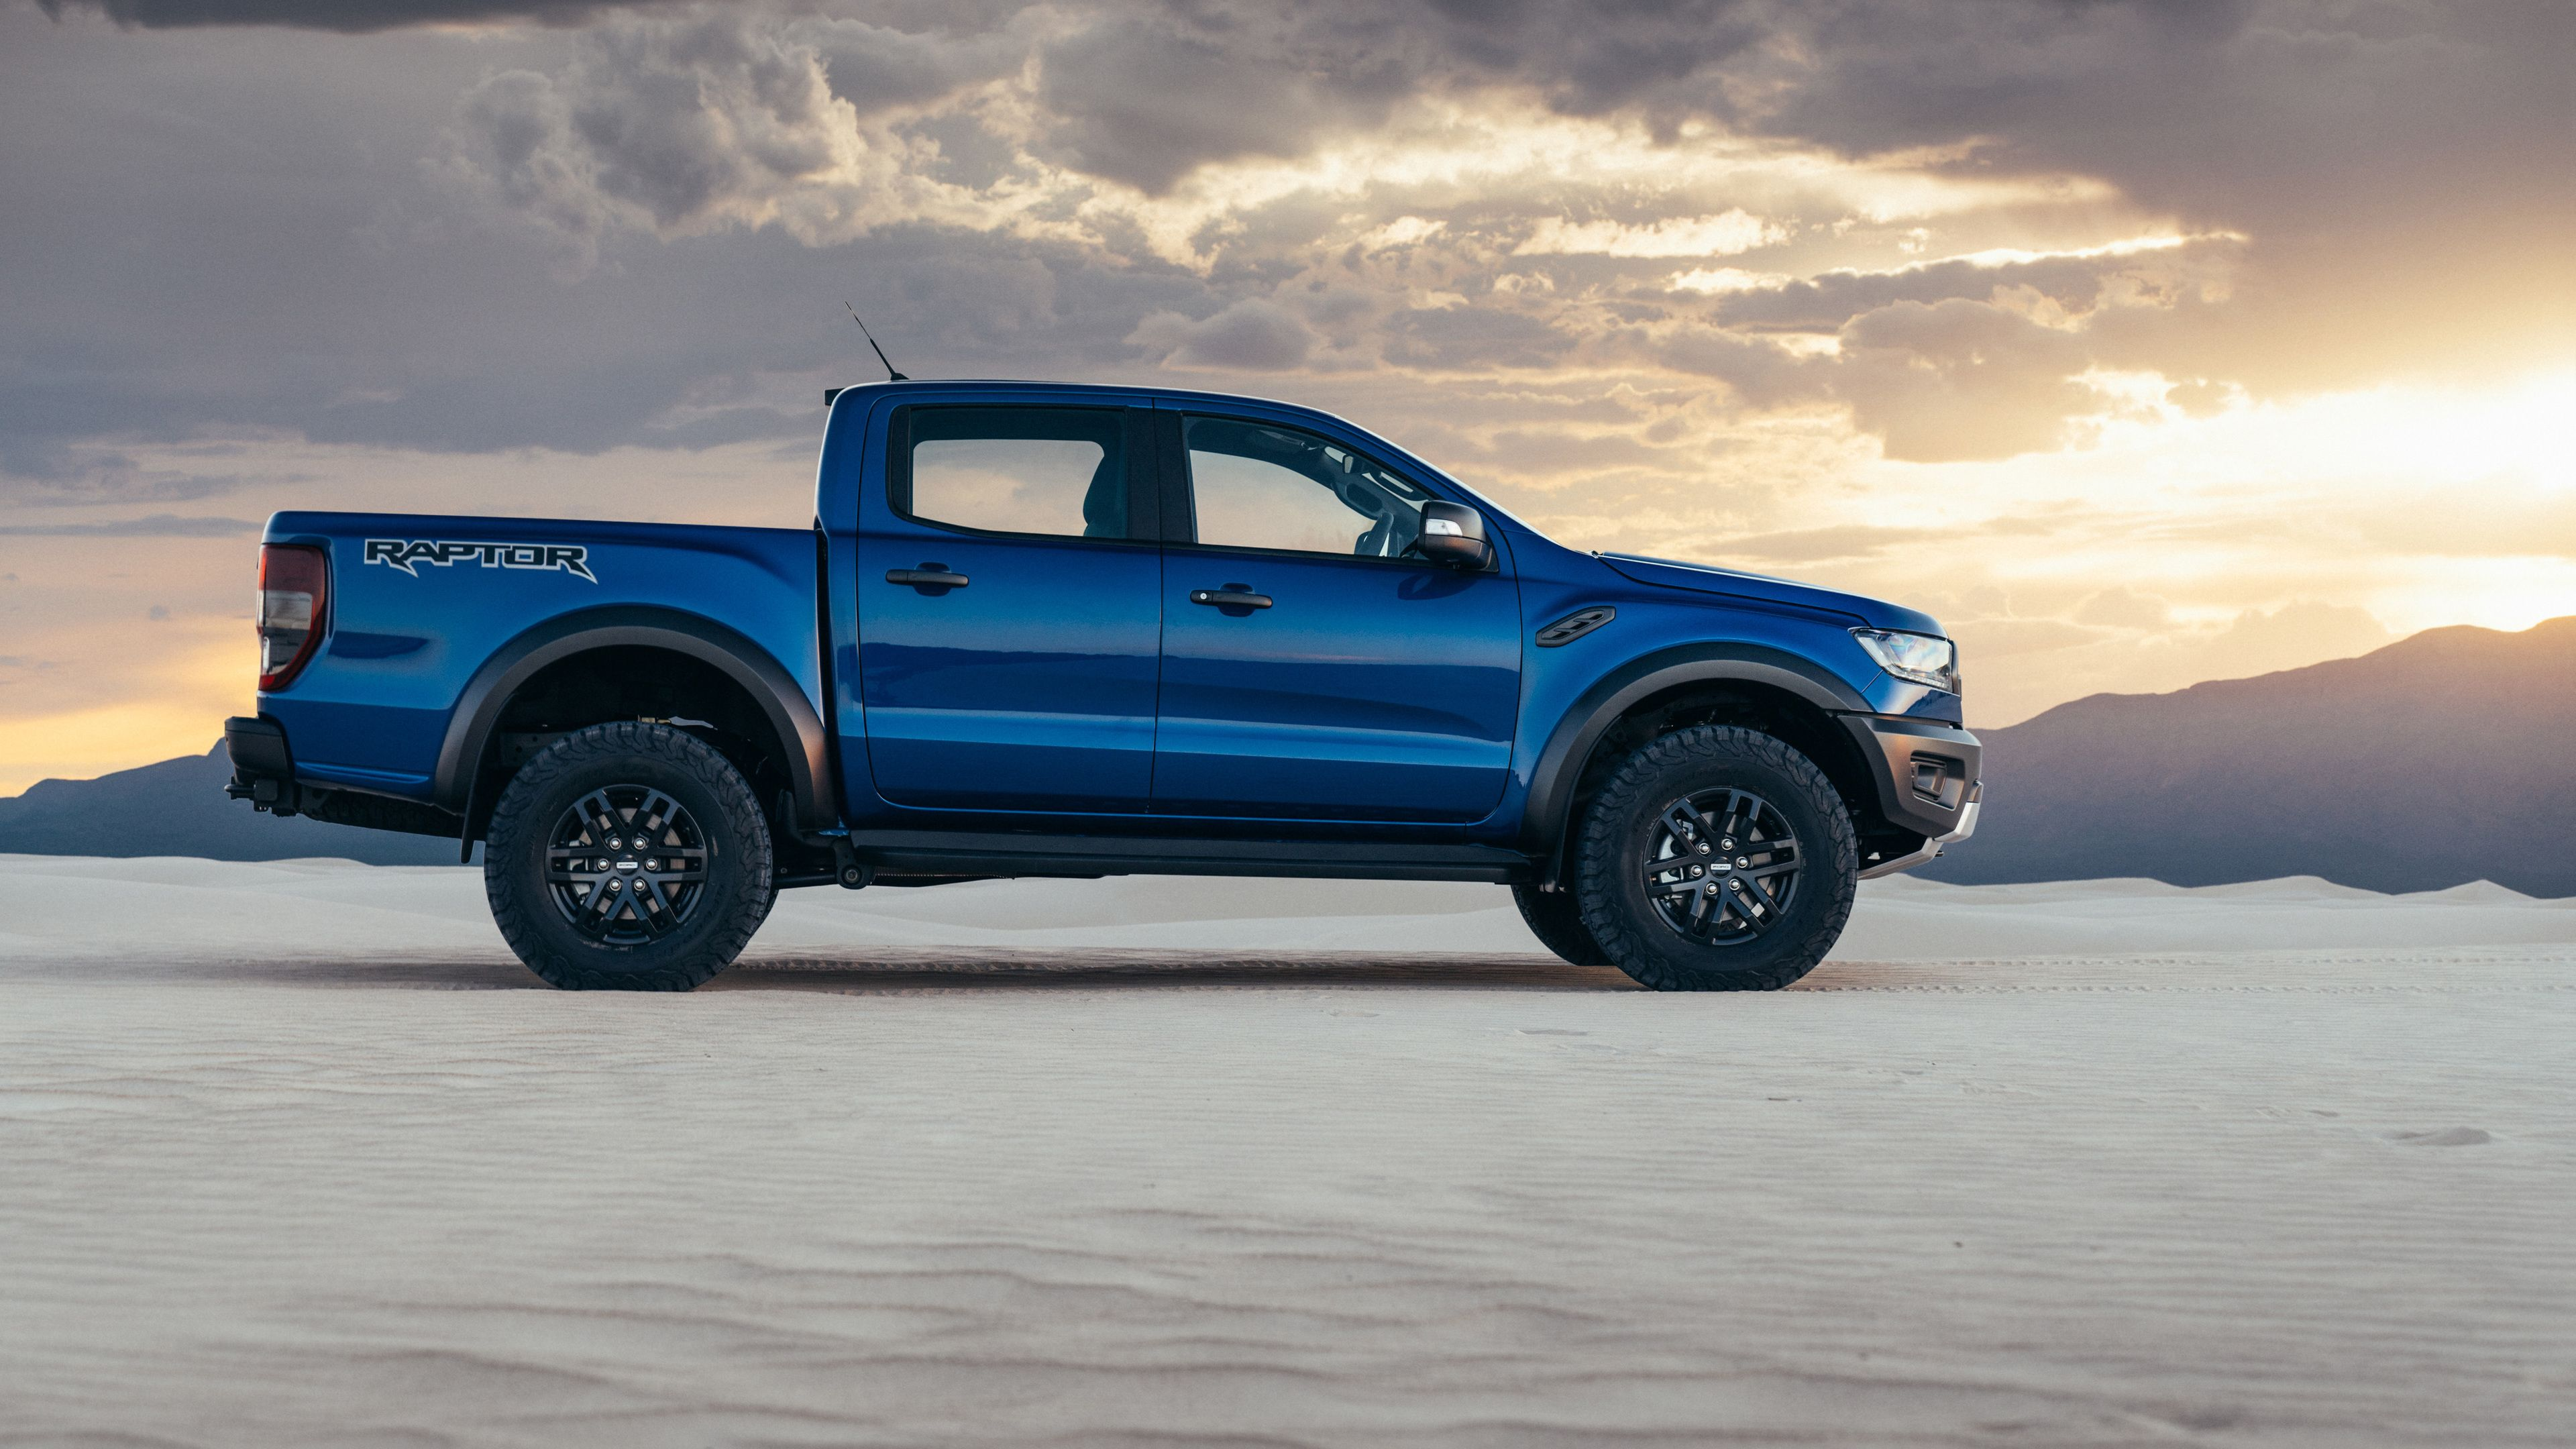 Wallpaper 4k Ford Ranger Raptor Side View 2019 2019 Cars Wallpapers 4k Wallpapers Cars Wallpapers Ford Ranger Raptor Wallpapers Ford Raptor Wallpapers Ford Ford Raptor Ford Ranger Ranger